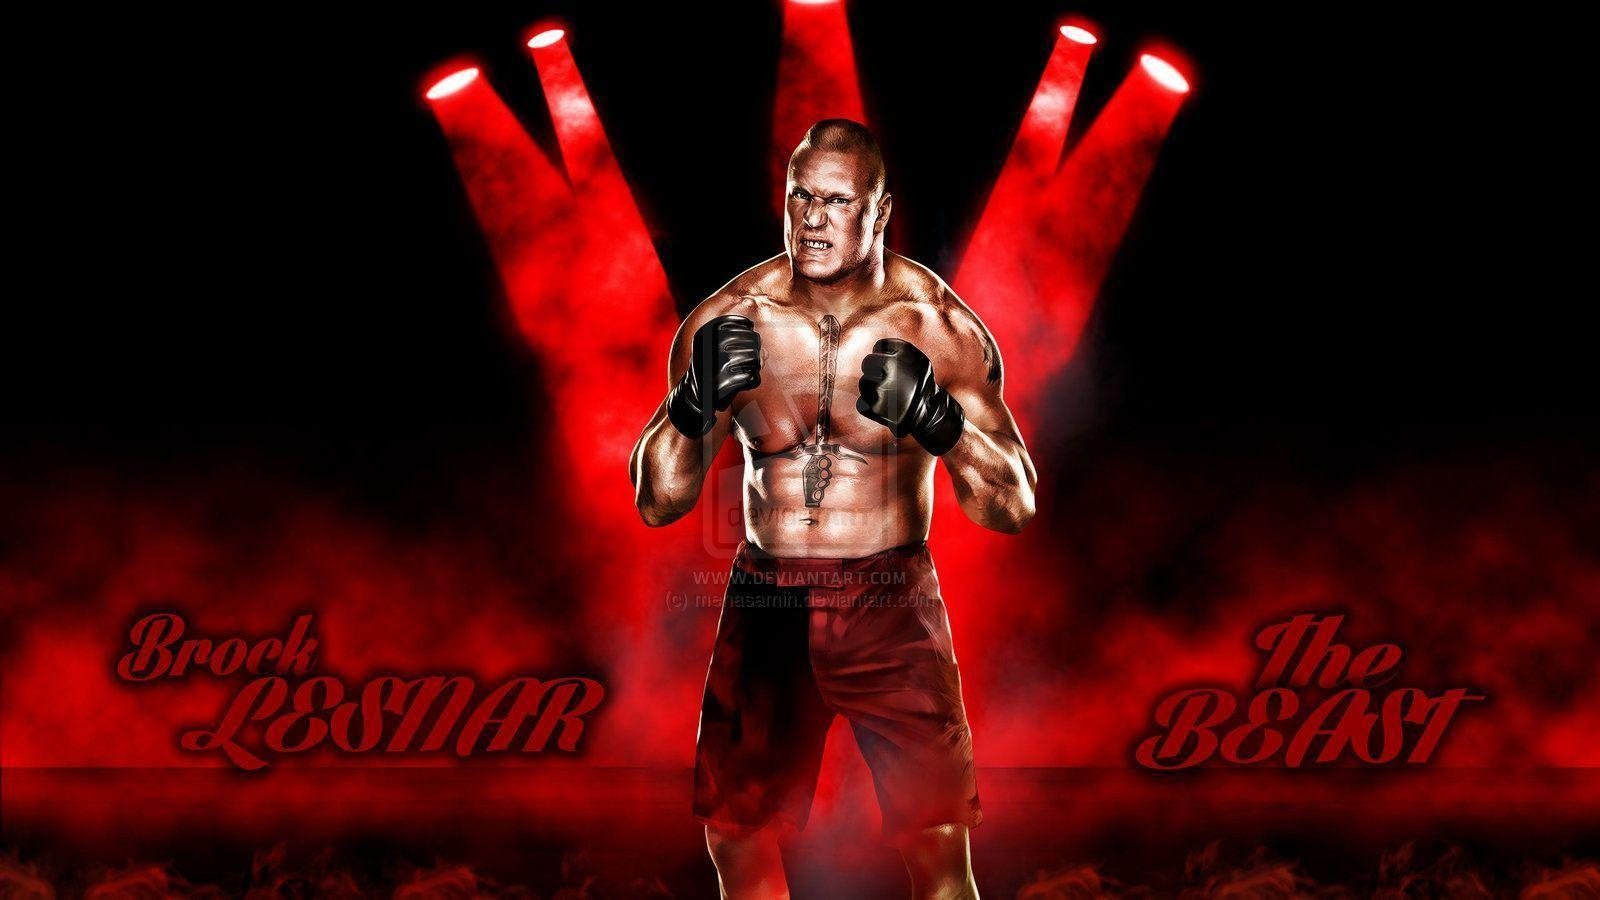 Brock Lesnar wallpapers